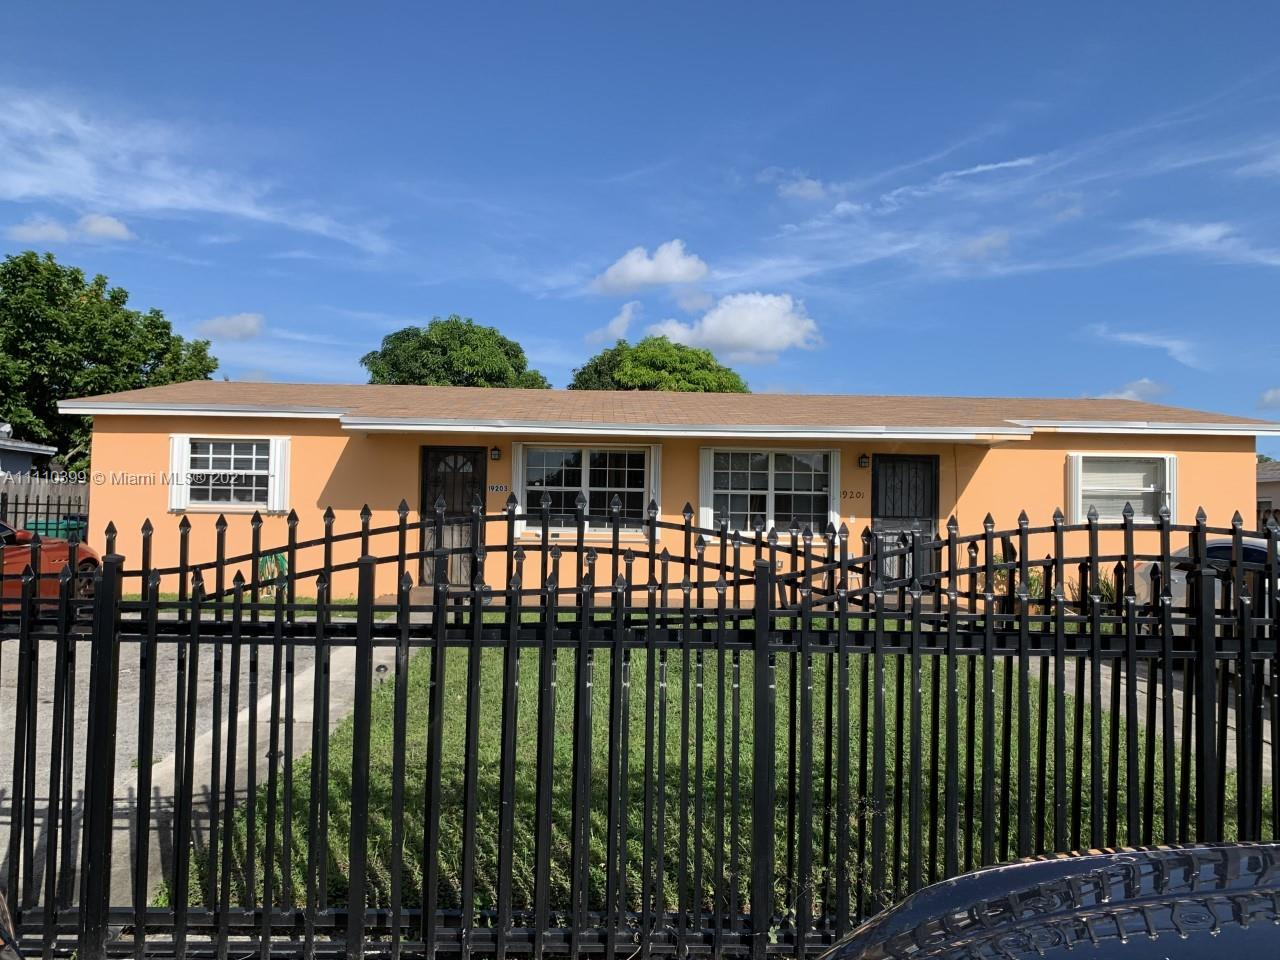 19201 NW 36th Ave, Miami Gardens, Florida 33056, ,Residential Income,For Sale,36th Ave,A11110399